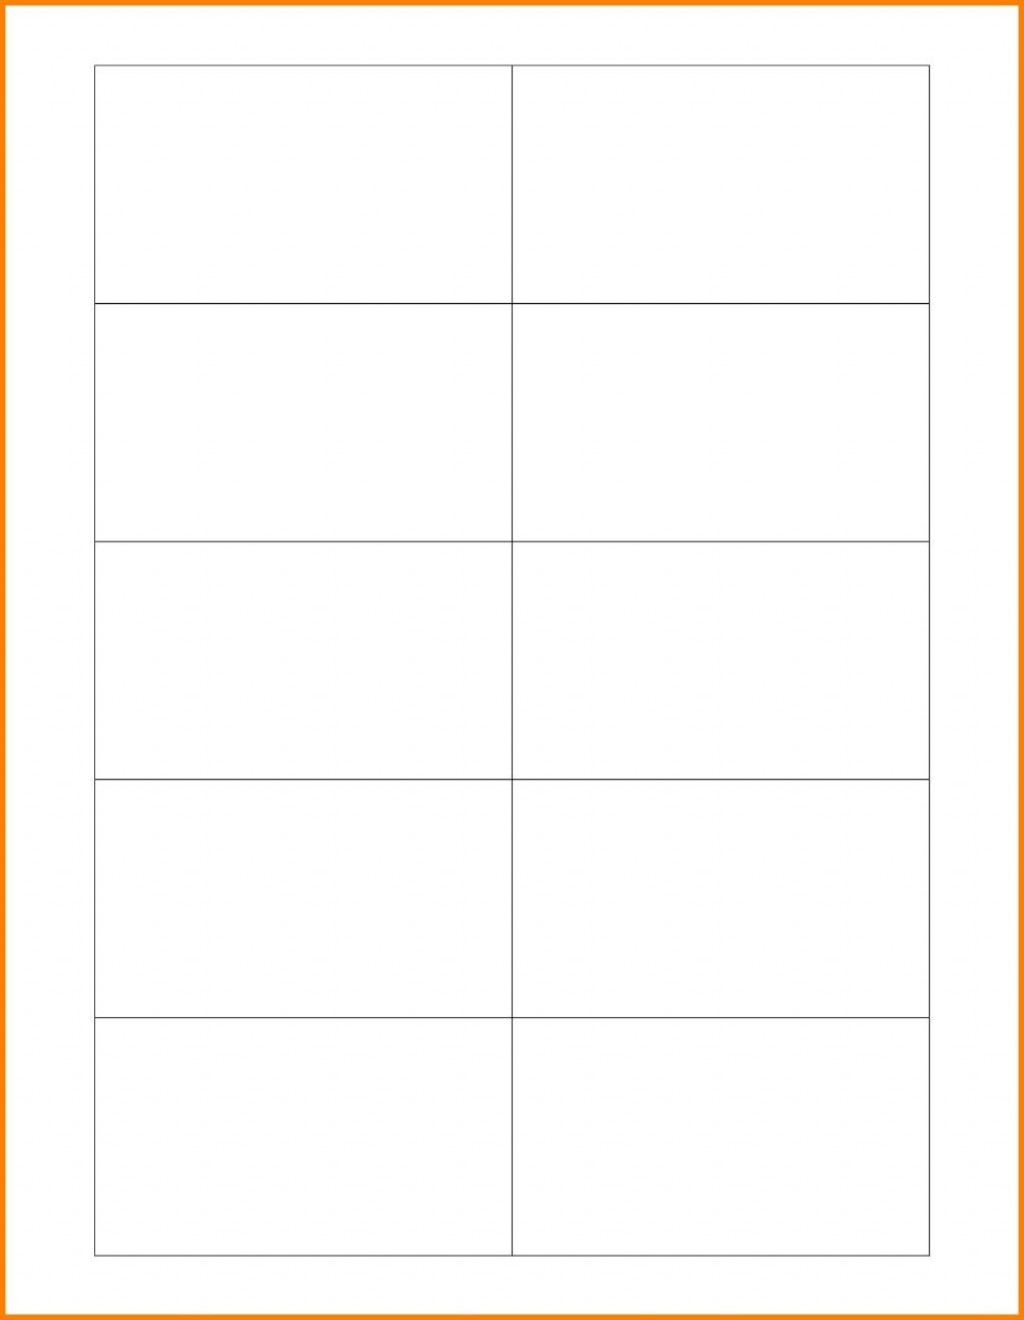 003 Marvelou Plain Busines Card Template Photo  White Free Download Blank Printable Word 2010Large